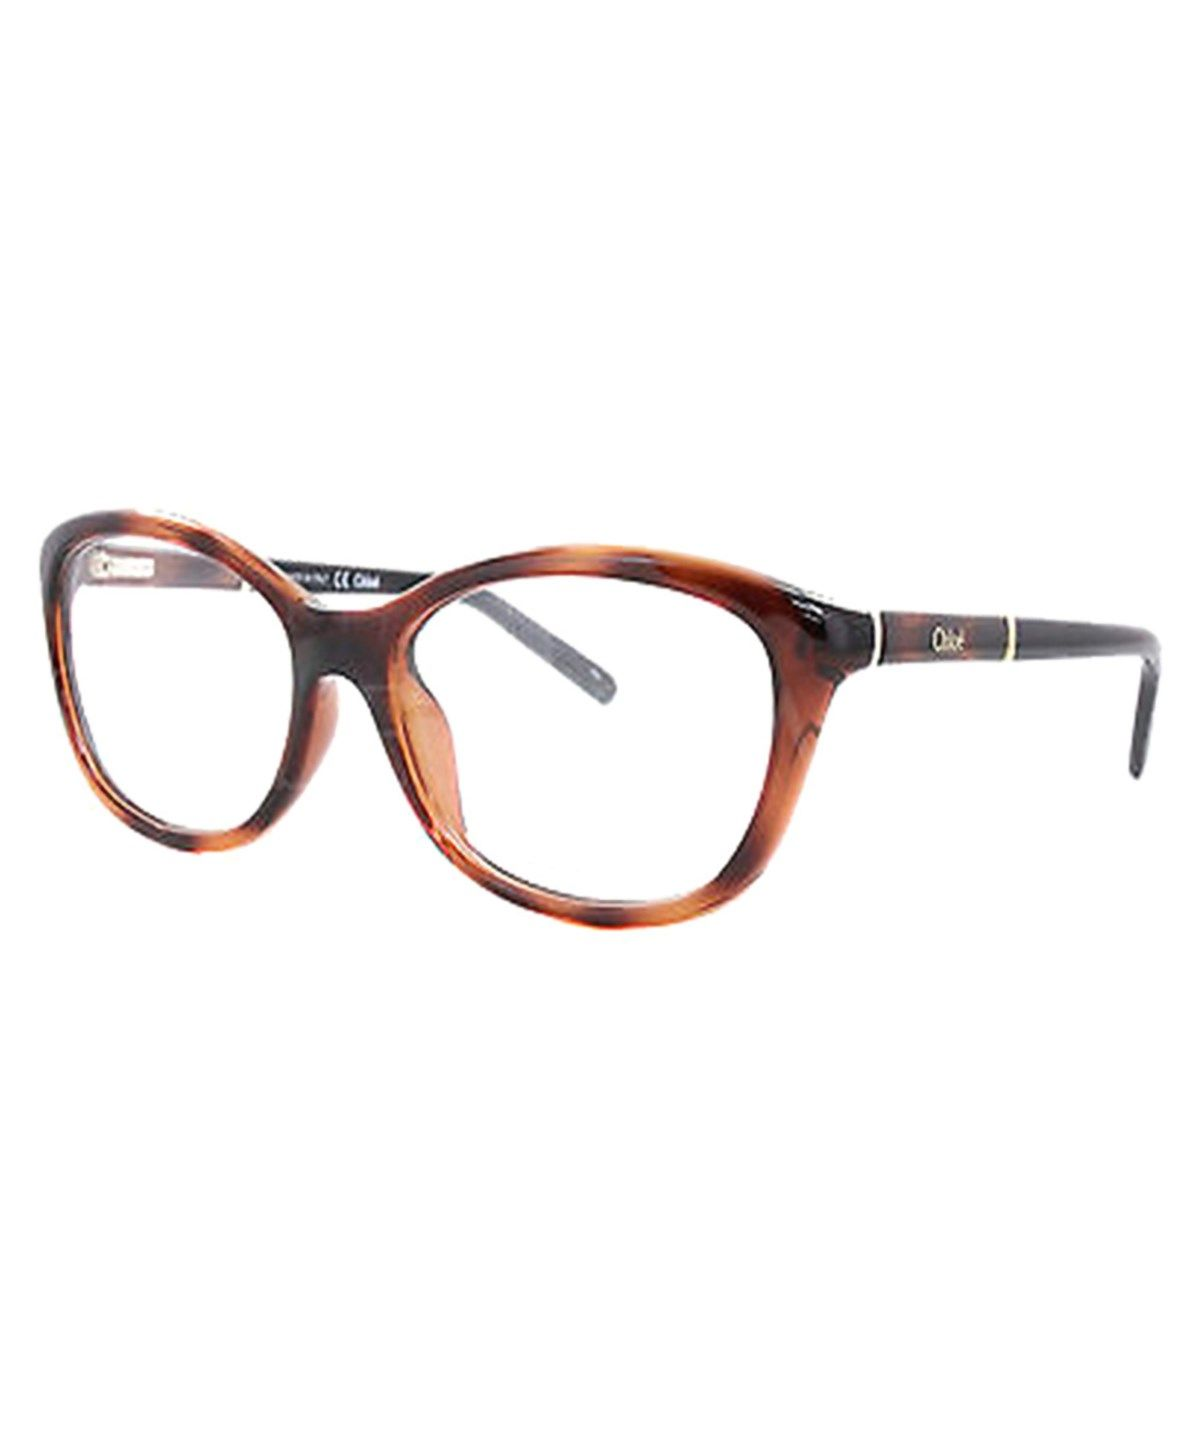 Chloe Women\'S Ce2640 Optical Frames\', Brown | Optical frames, Brown ...